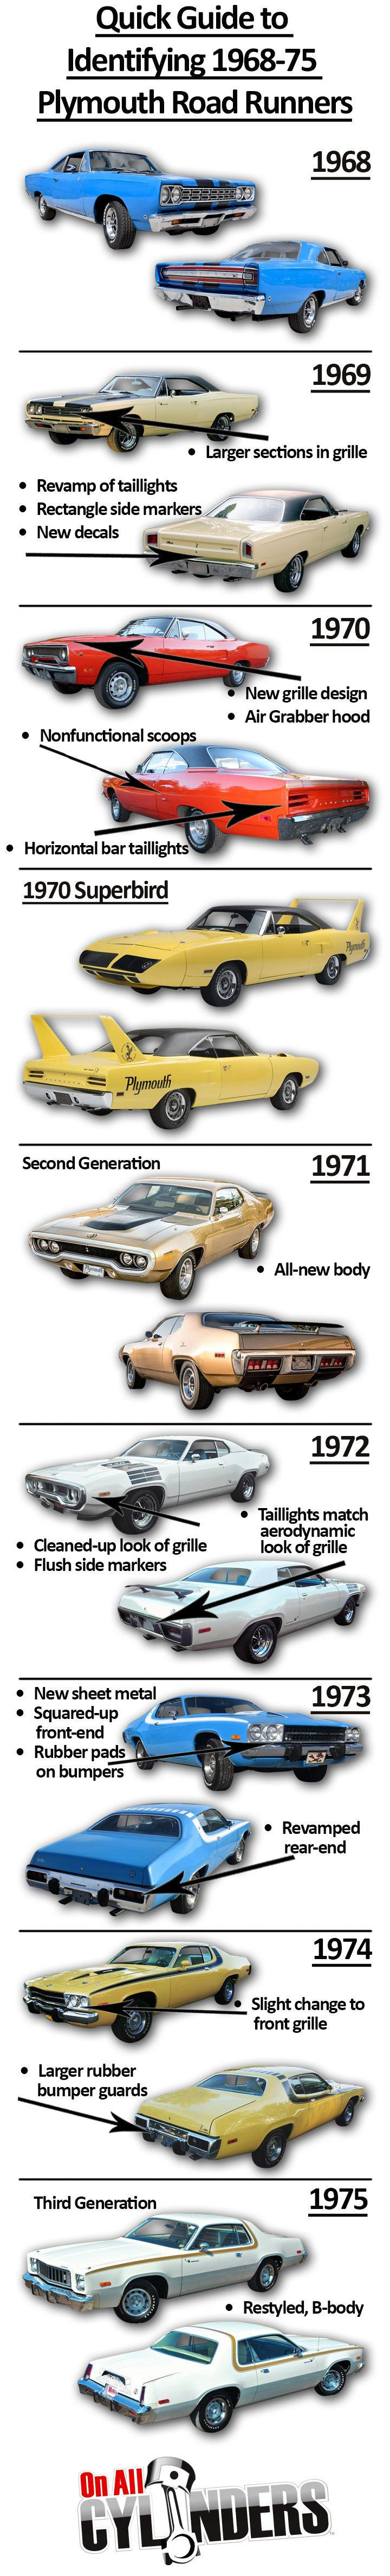 Ride Guides: A Quick Guide to Identifying 1968-'75 Plymouth Road Runners